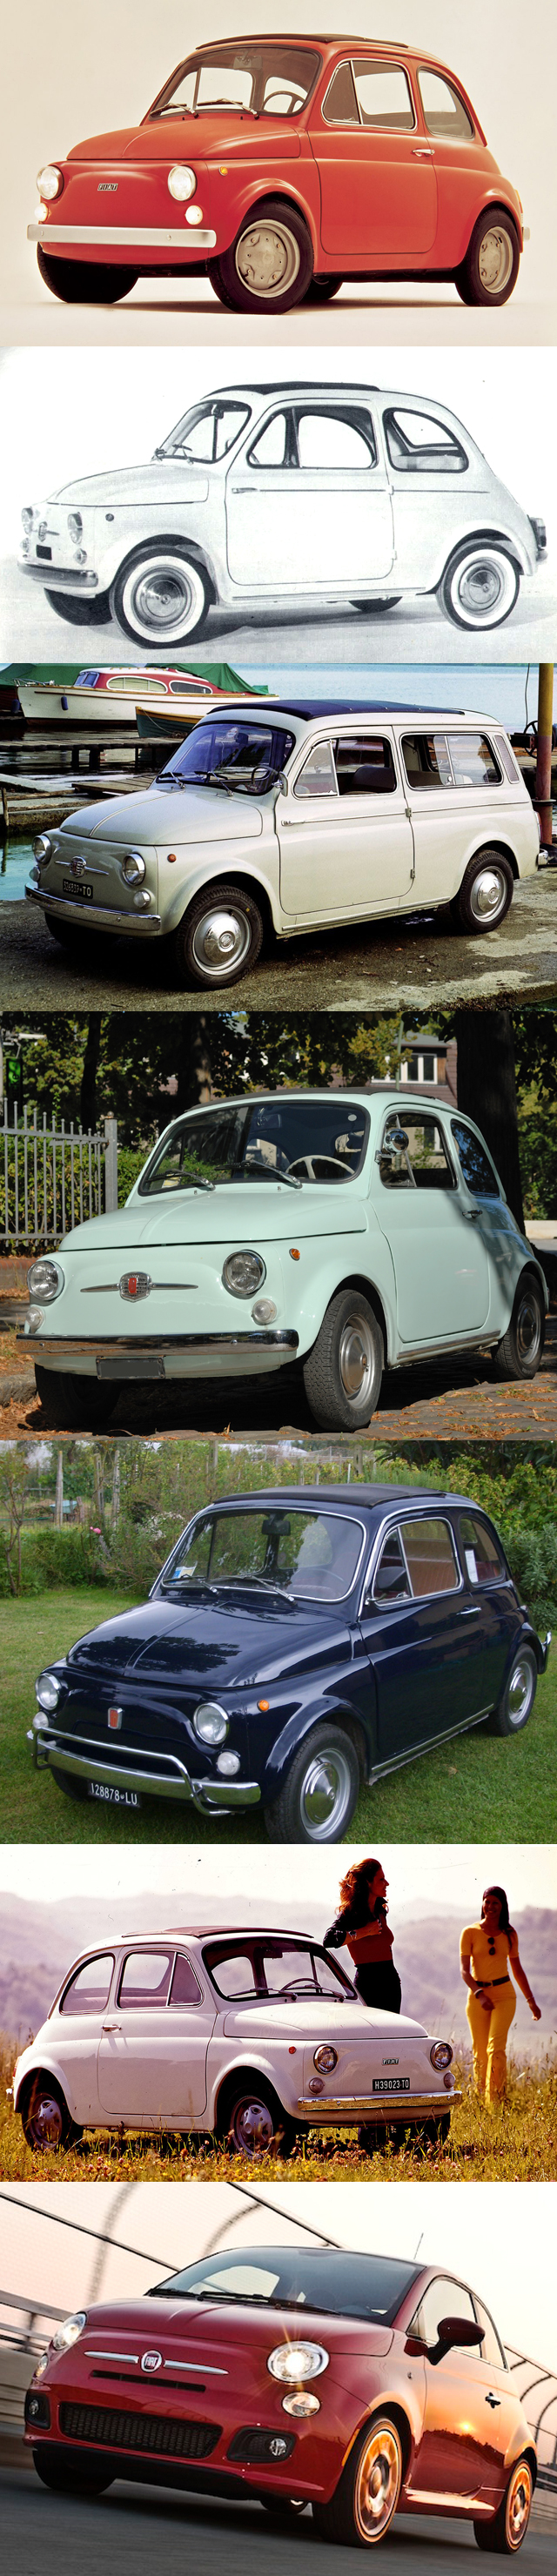 fiat-500-history